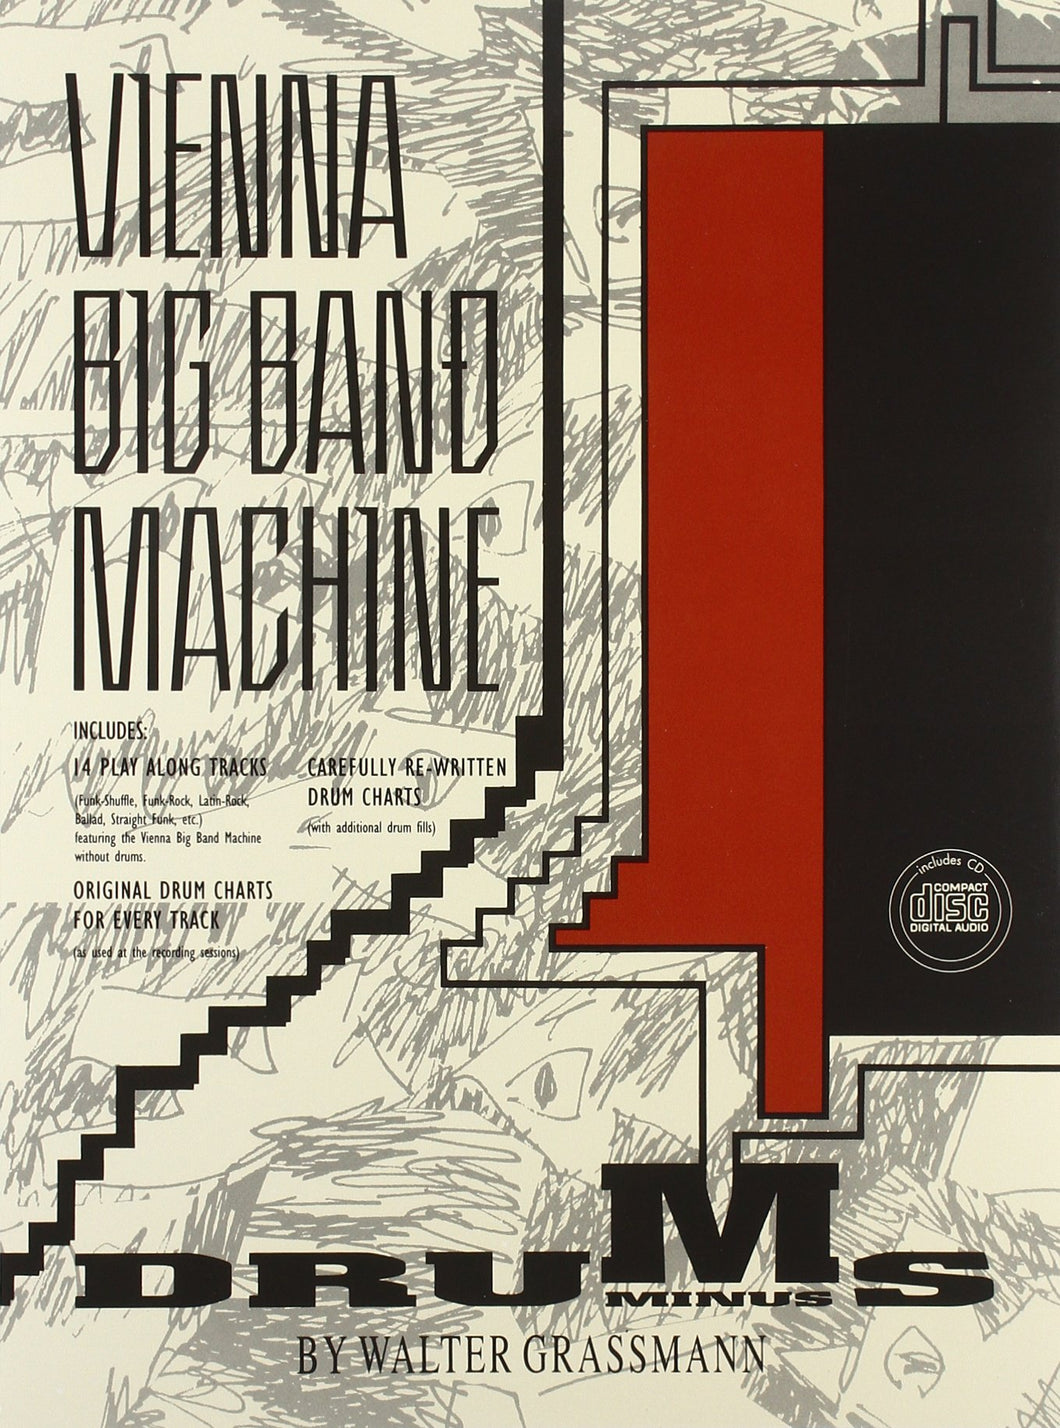 Hittin' The Target - Vienna Big Band Machine - Collection of Drum Transcriptions / Drum Sheet Music - Alfred Music VBBMMD